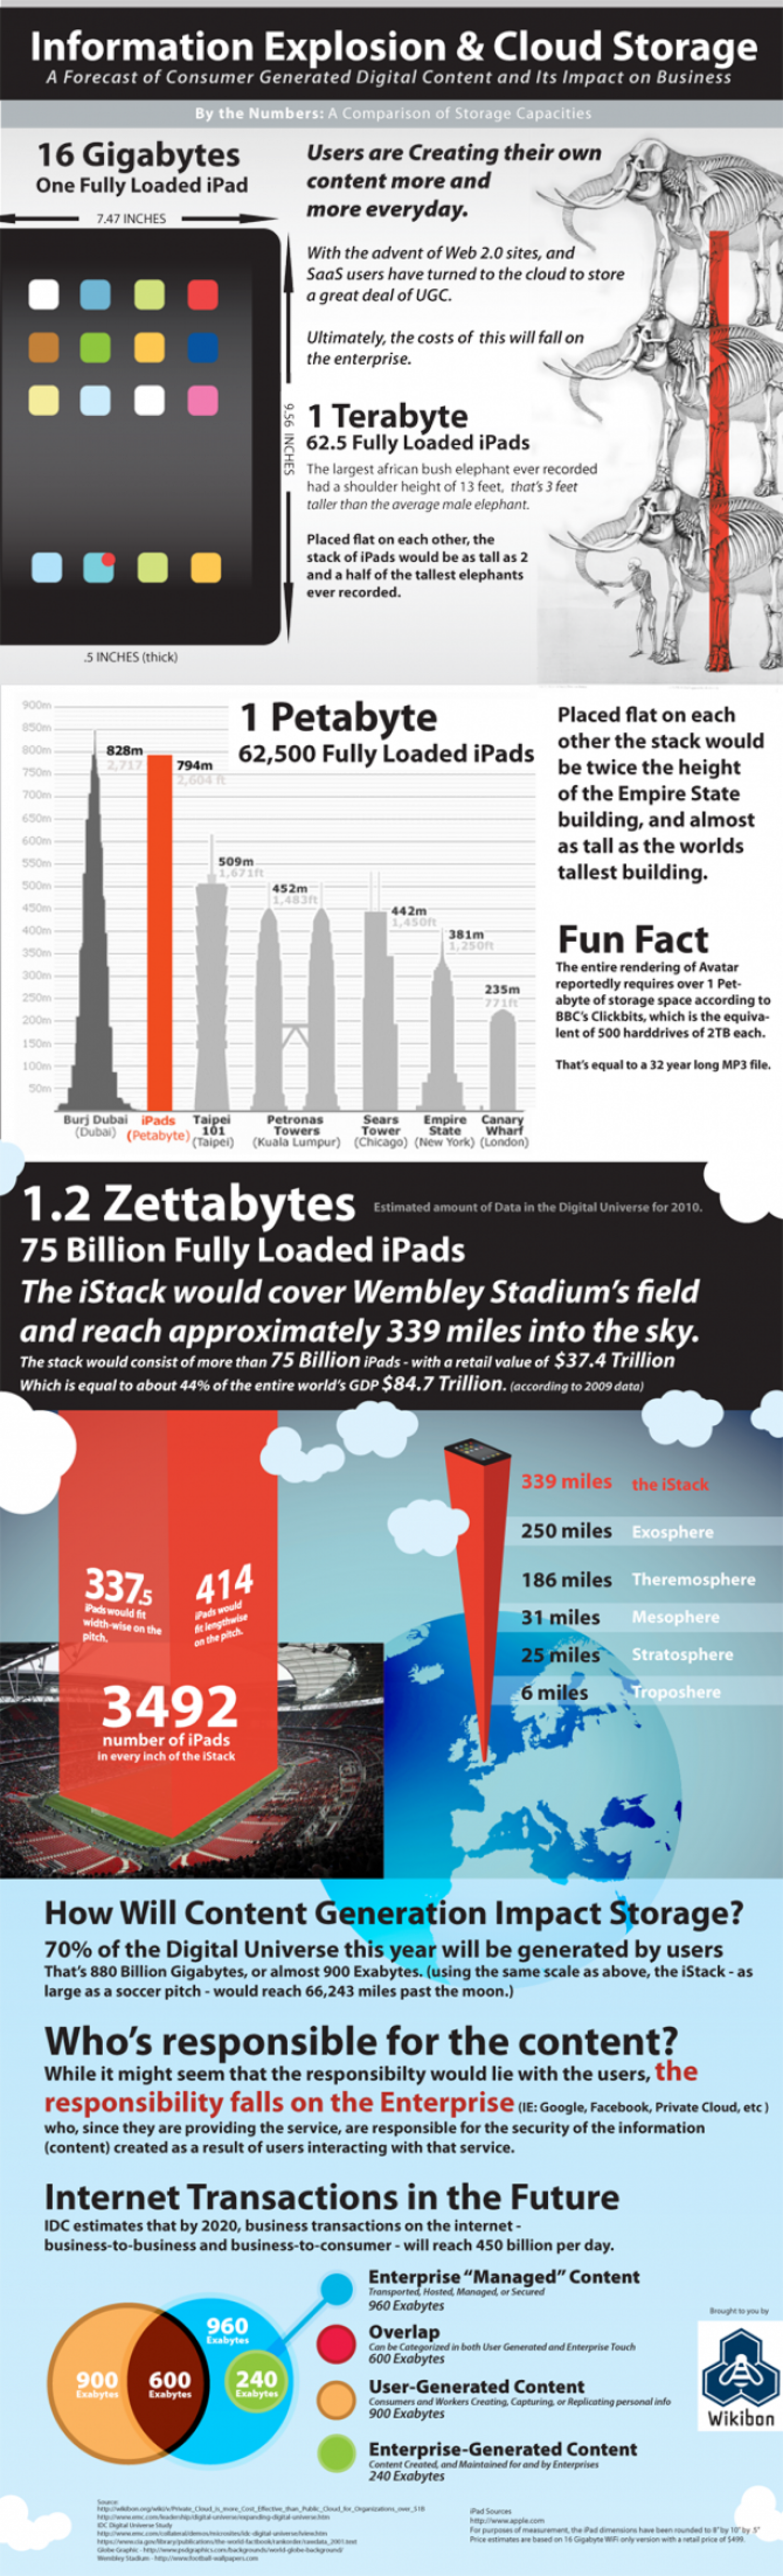 Information Explosion and Cloud Storage  Infographic